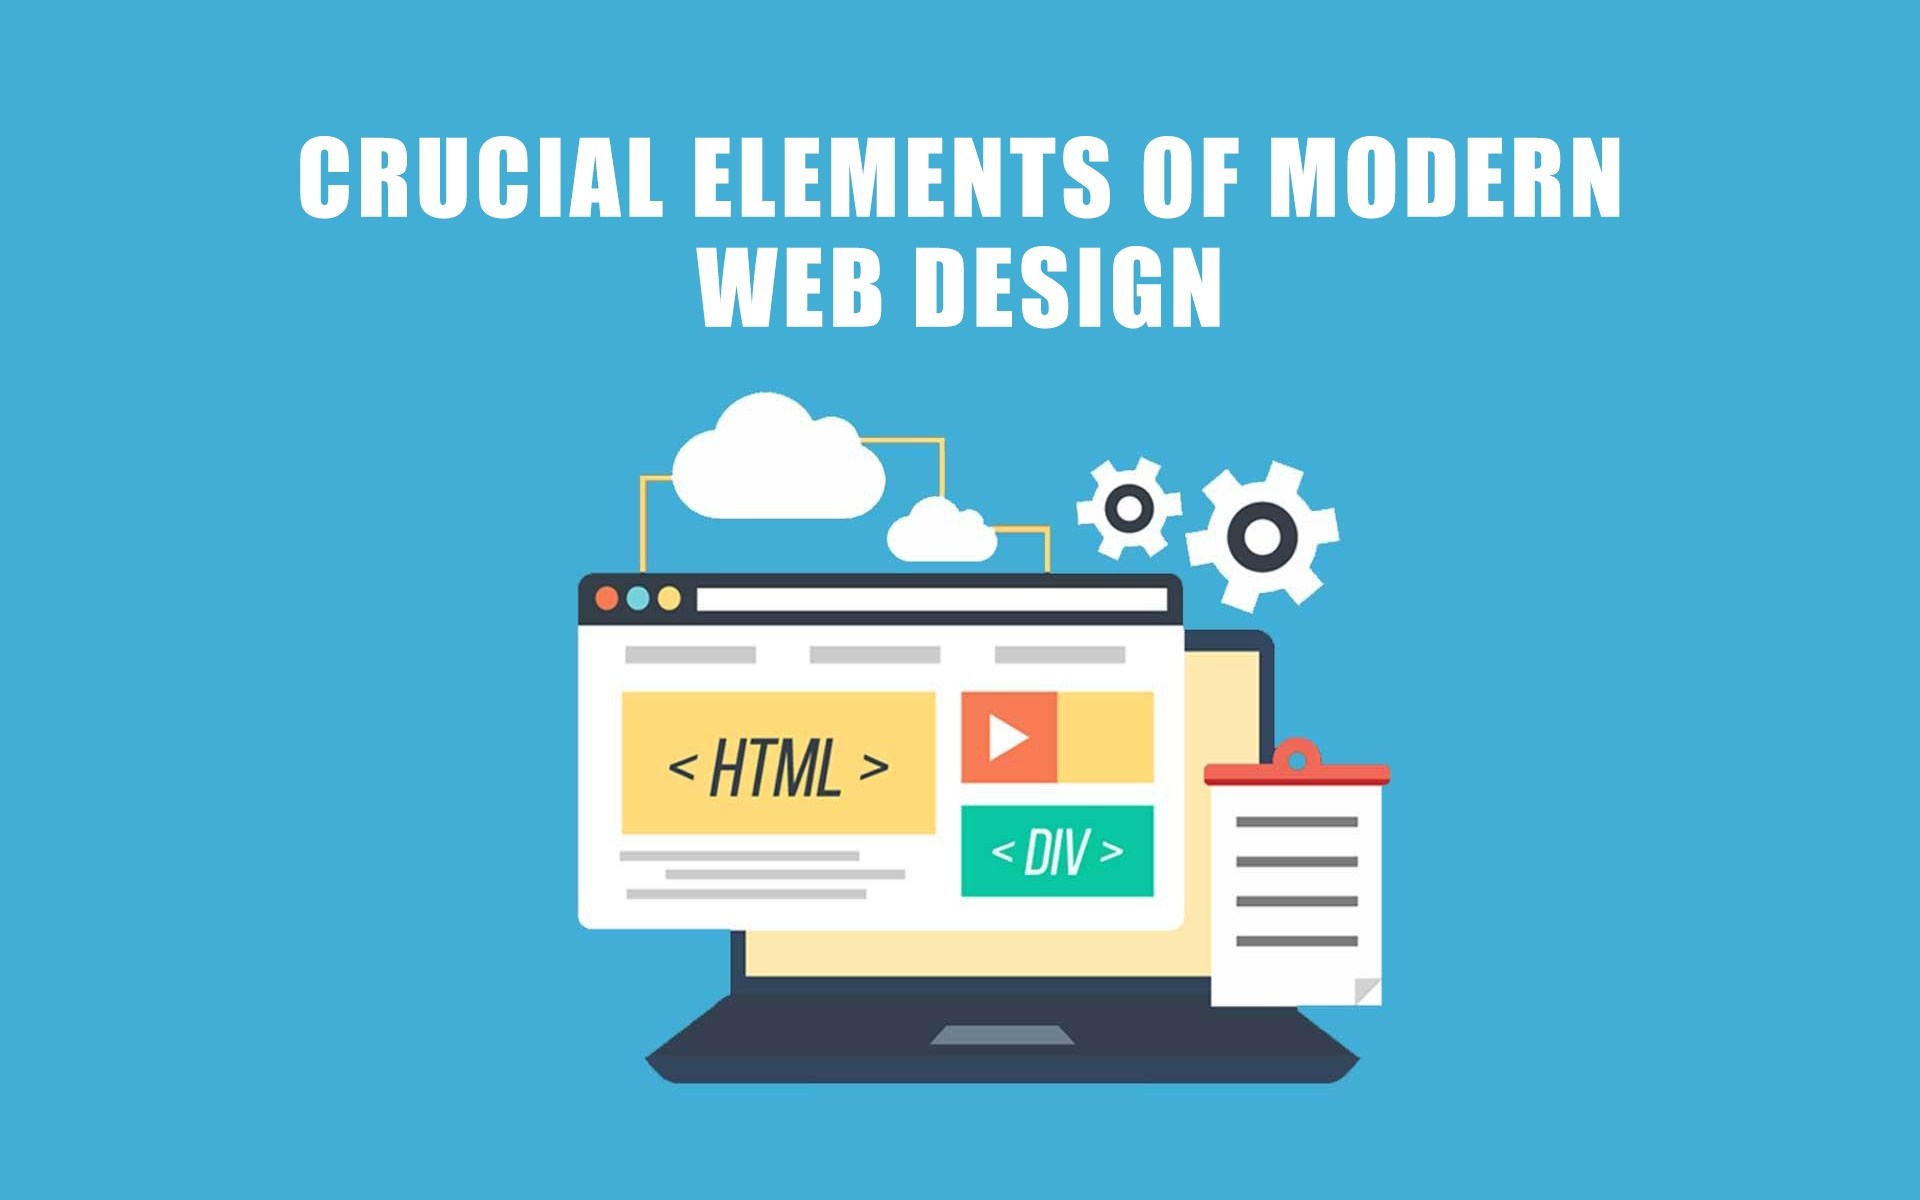 Crucial Elements of Modern Web Design